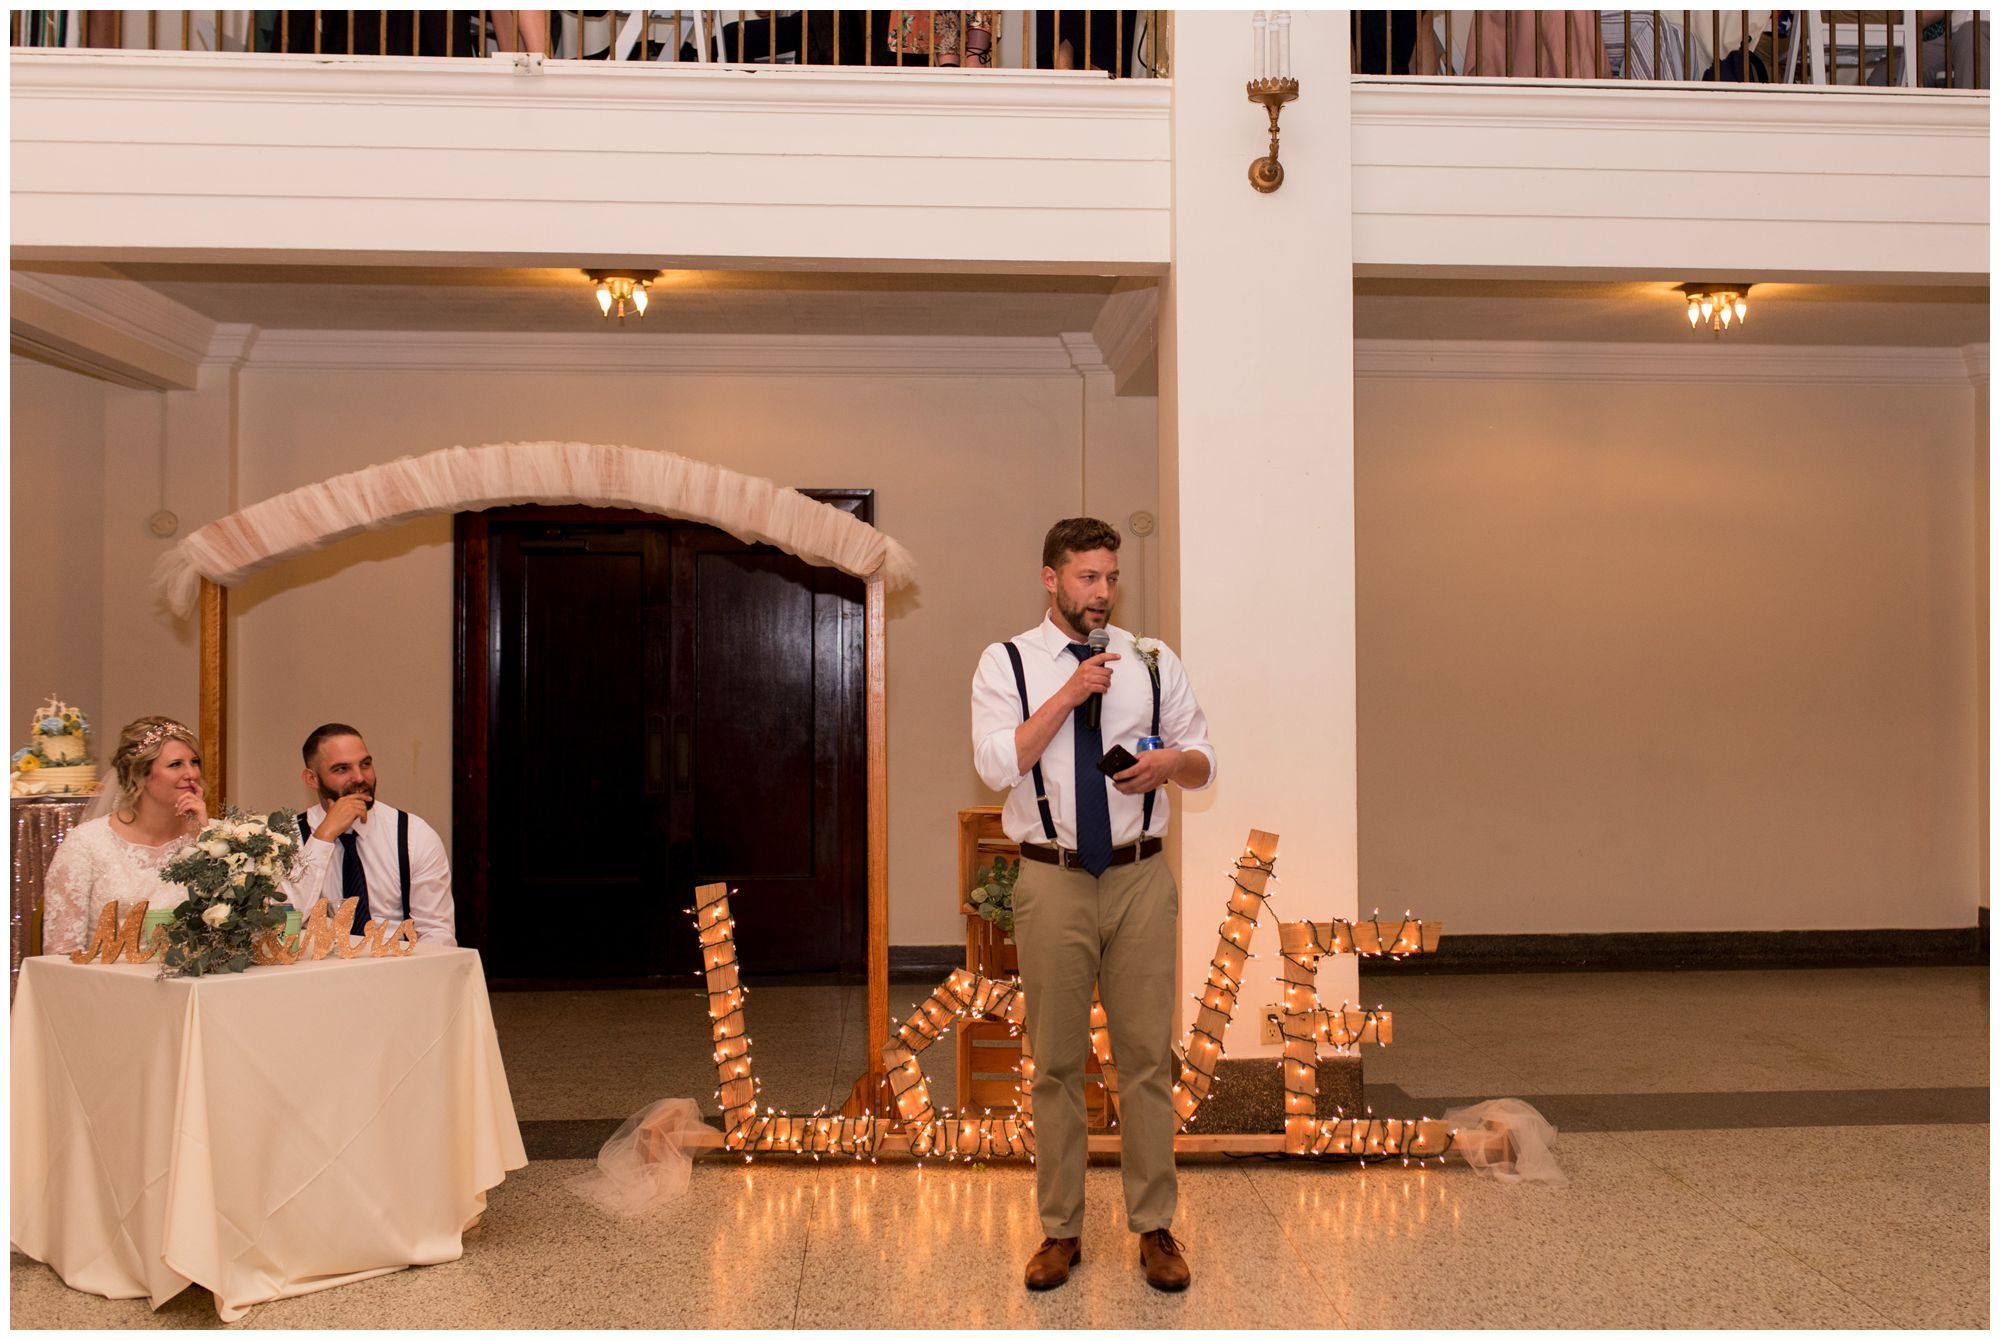 best man toasts during wedding reception at Cornerstone Center for the Arts